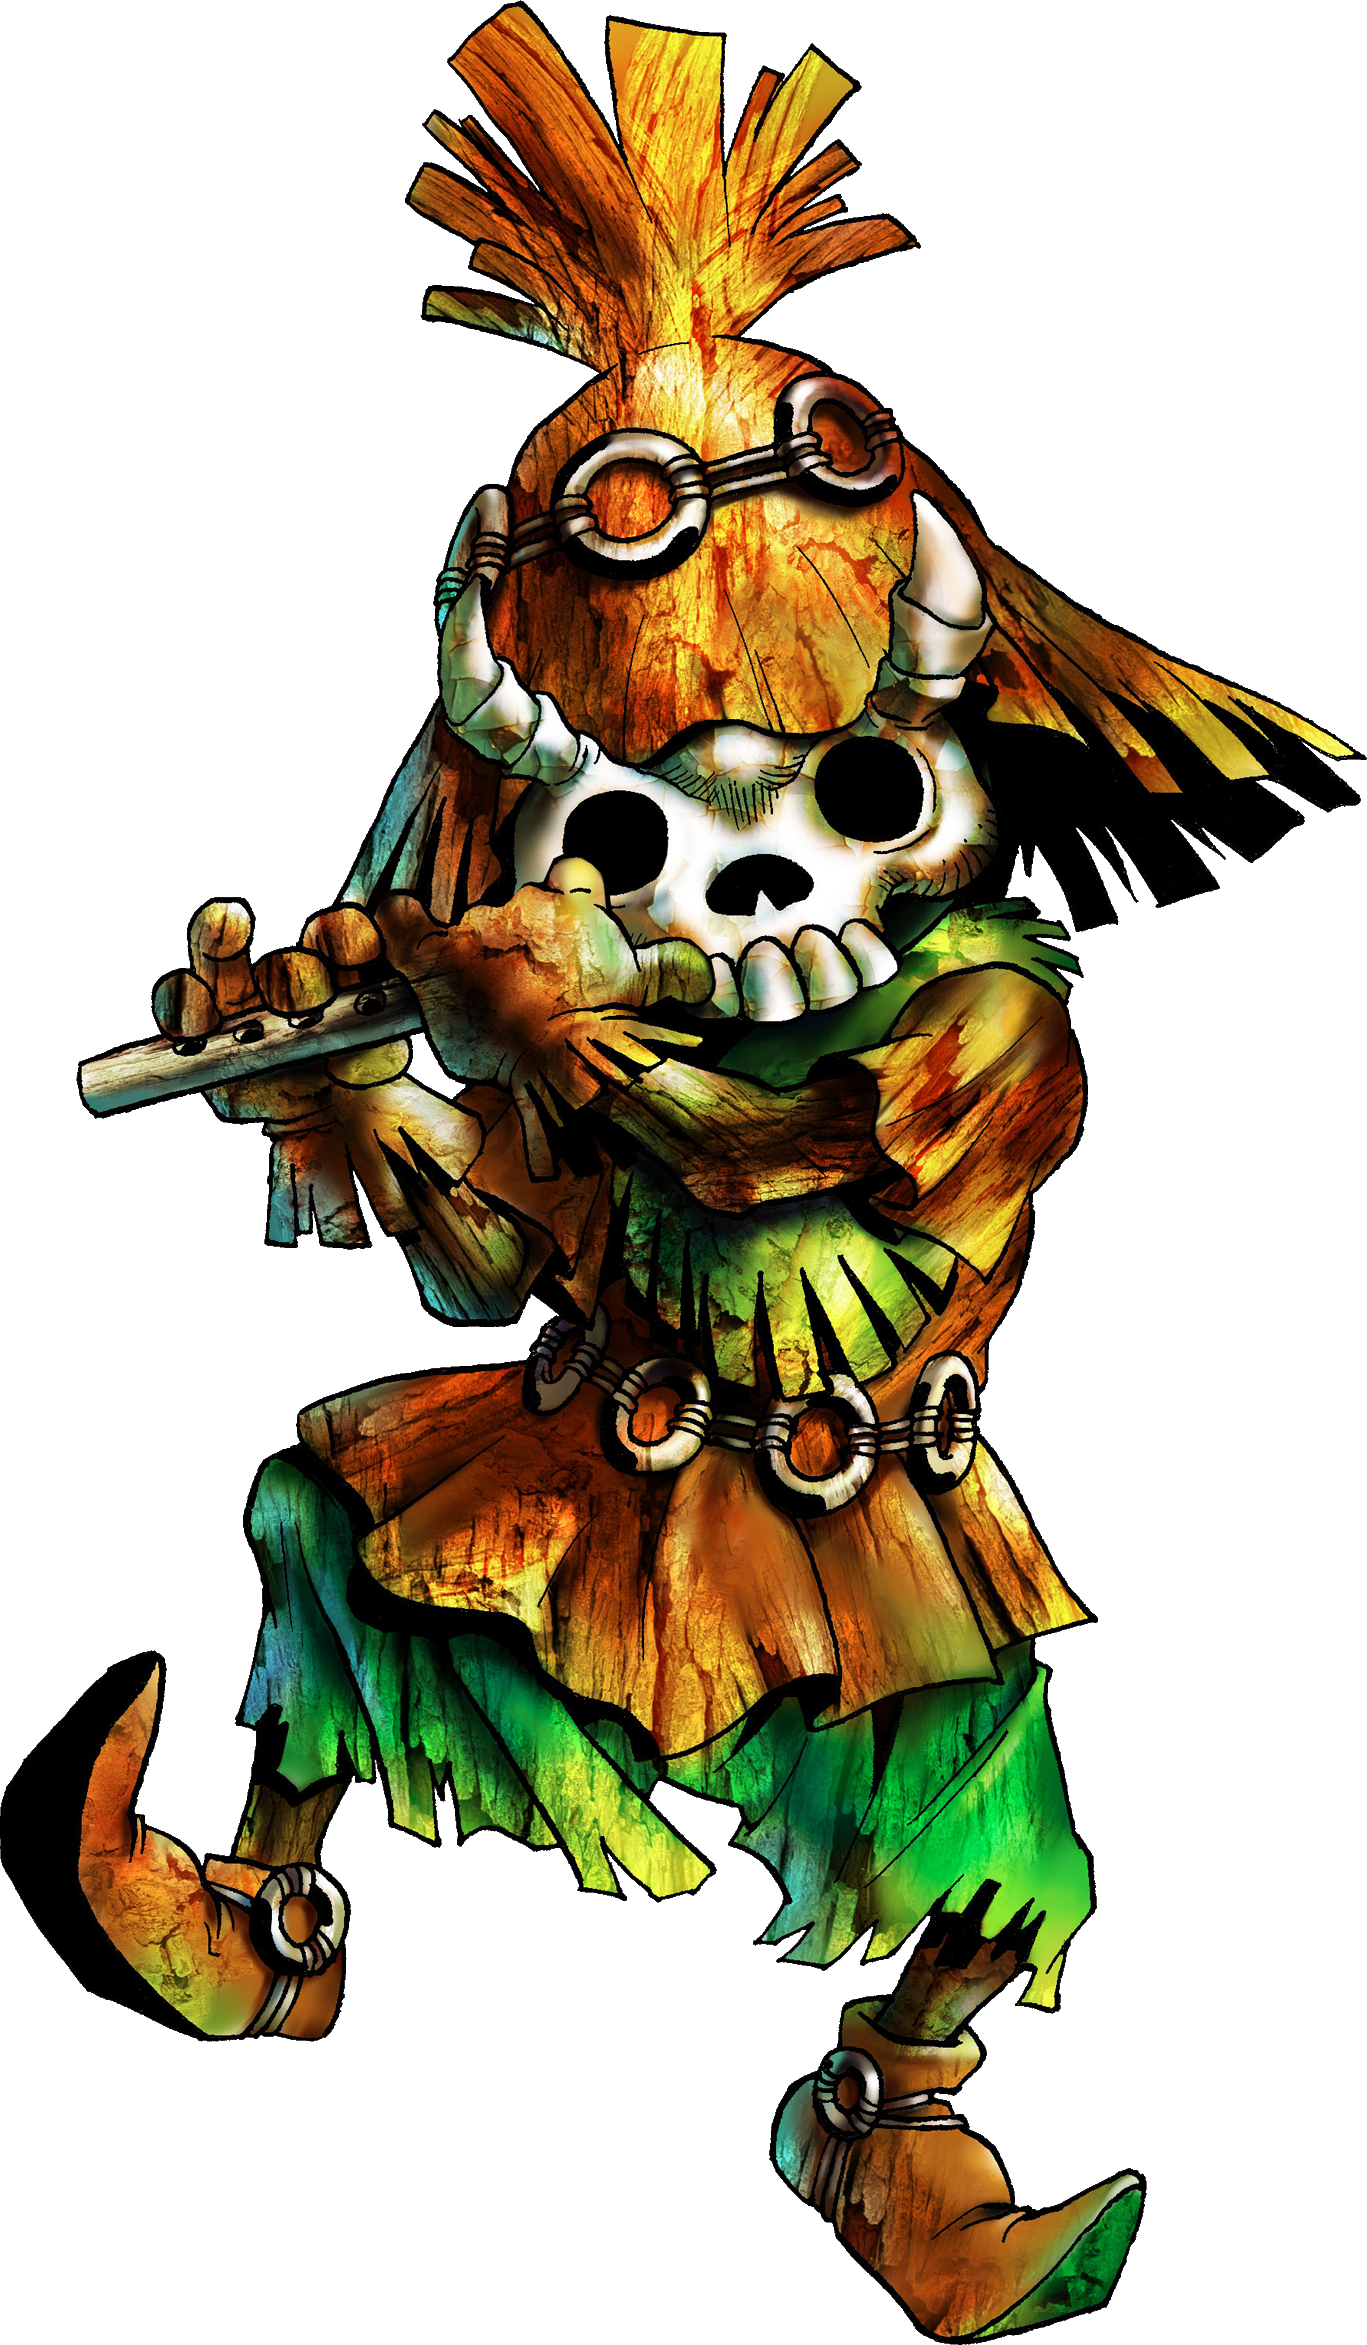 Majora's Mask 3DS announced! | NeoGAF